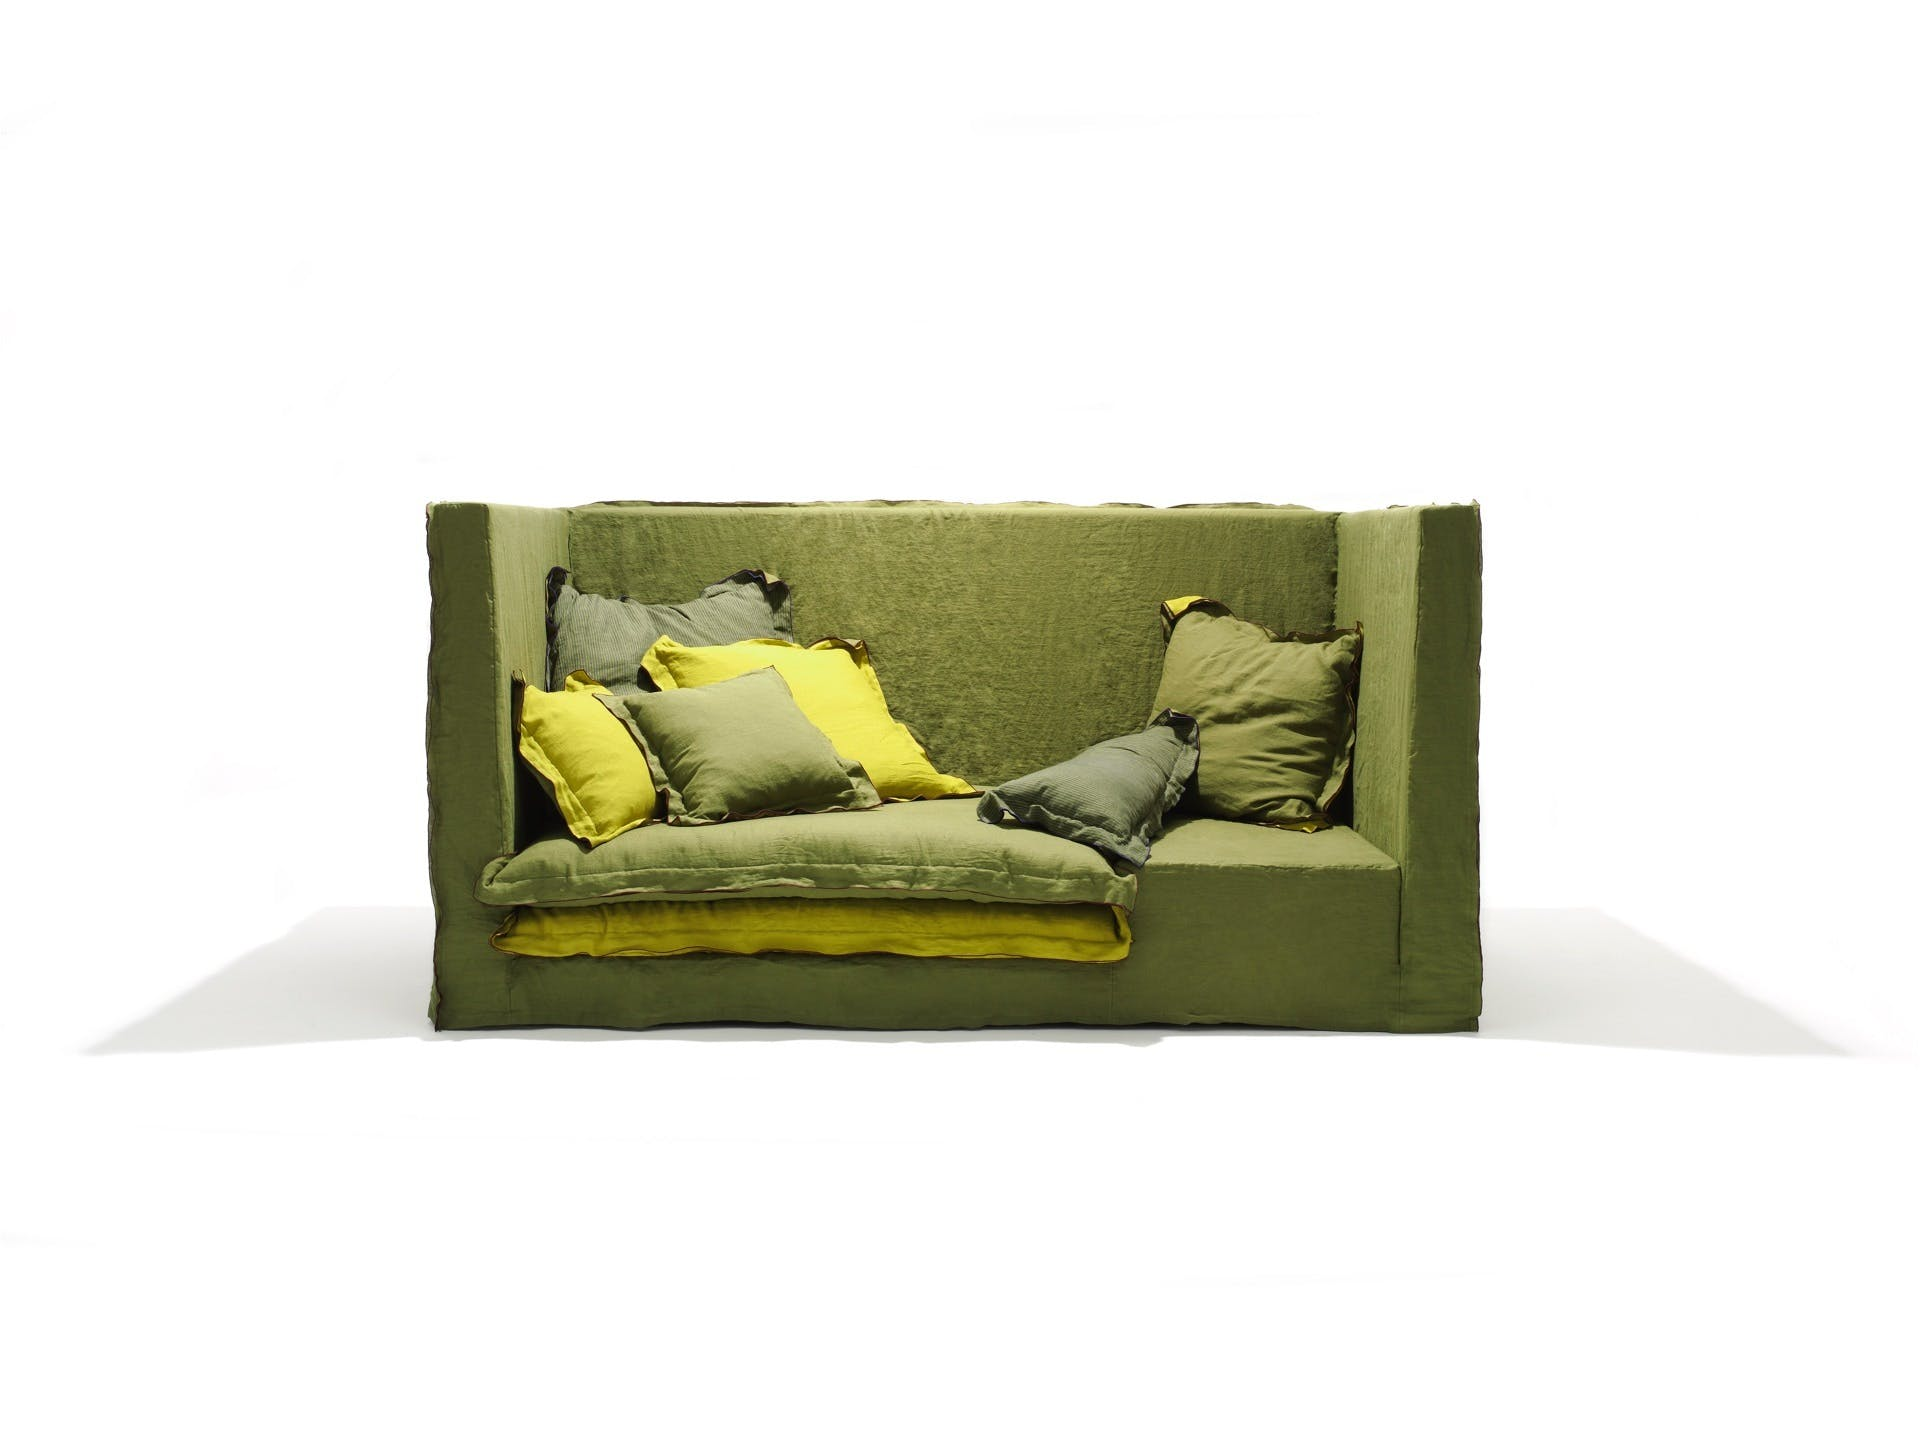 Jans New Sofa 2 Paola Navone Low